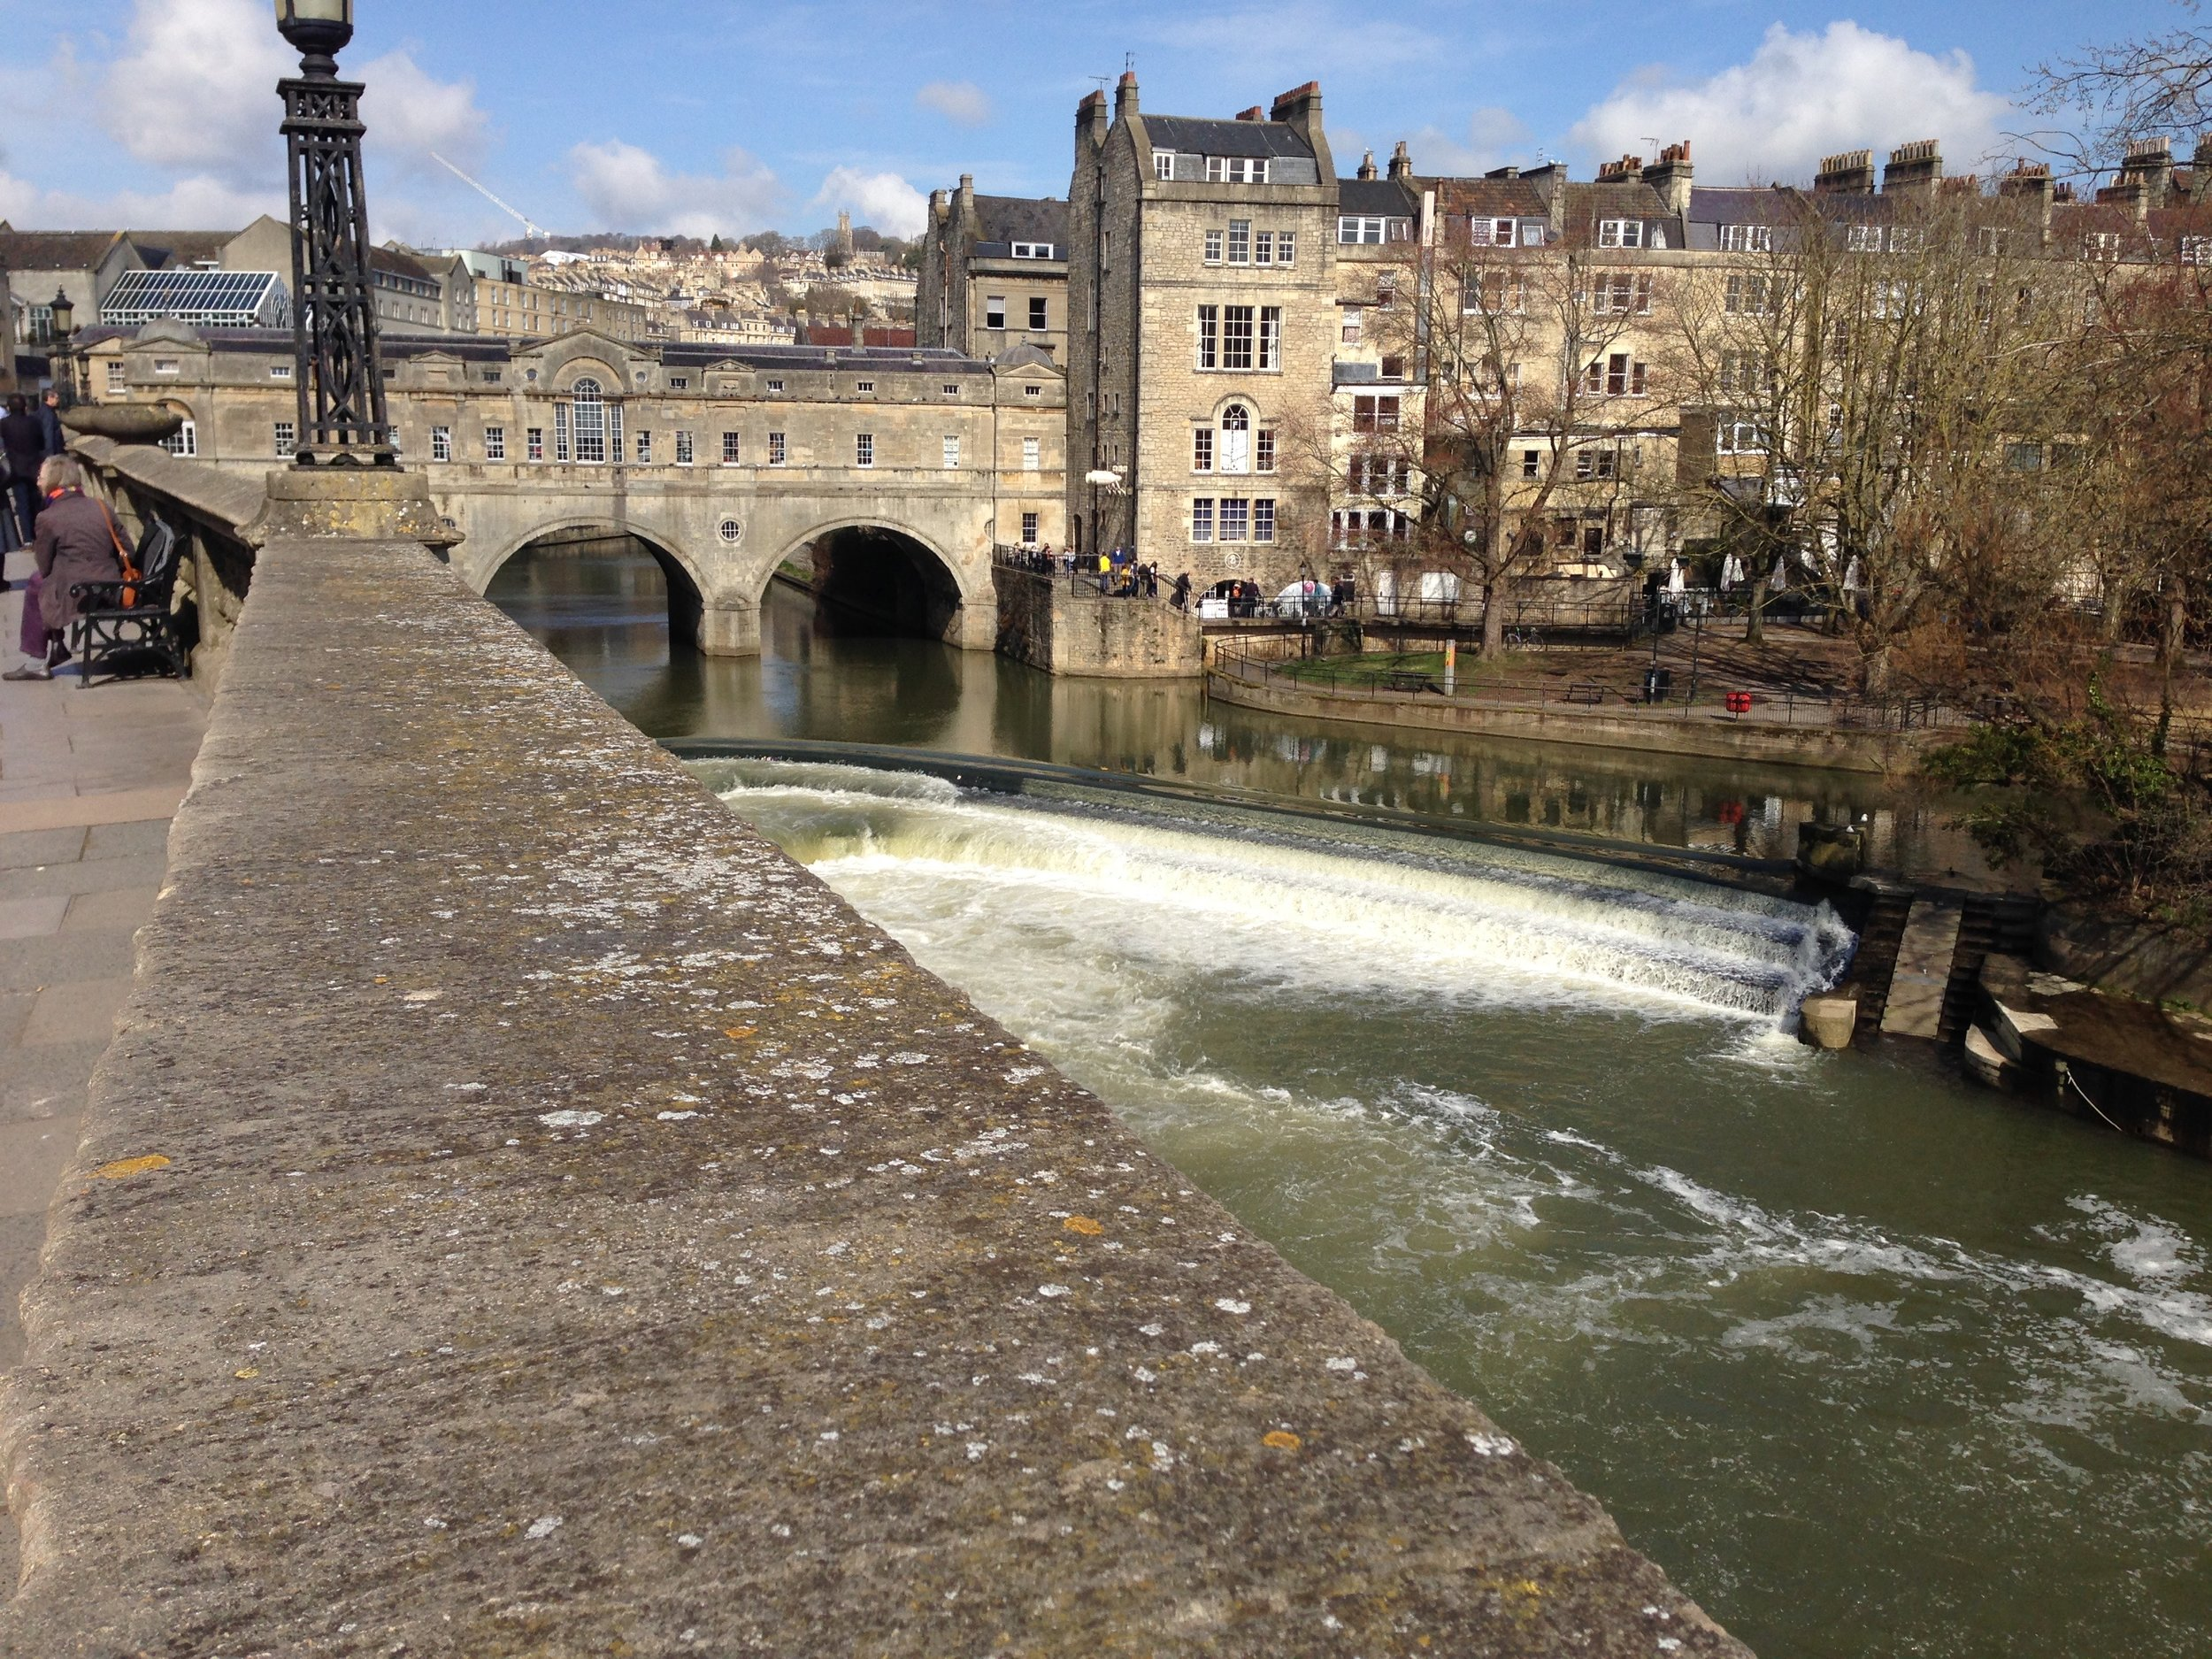 The beautiful city of Bath Spa